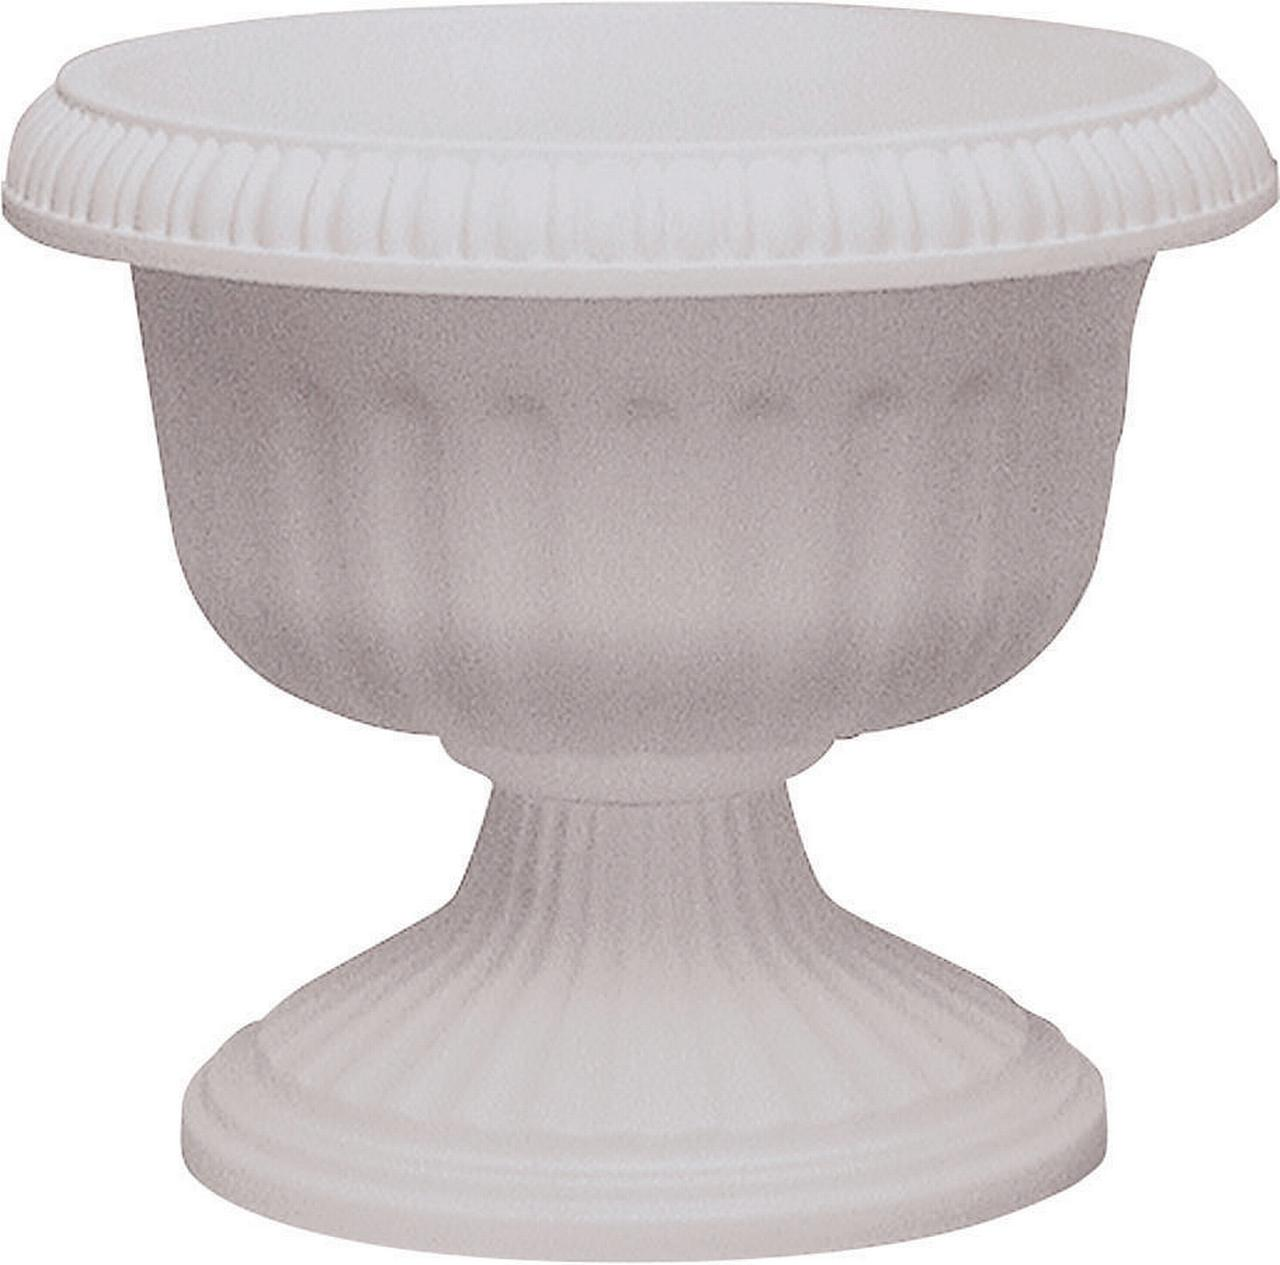 Southern Patio-Dynamic Design Ambassador Collection Grecian Urn- Stone 18 Inch